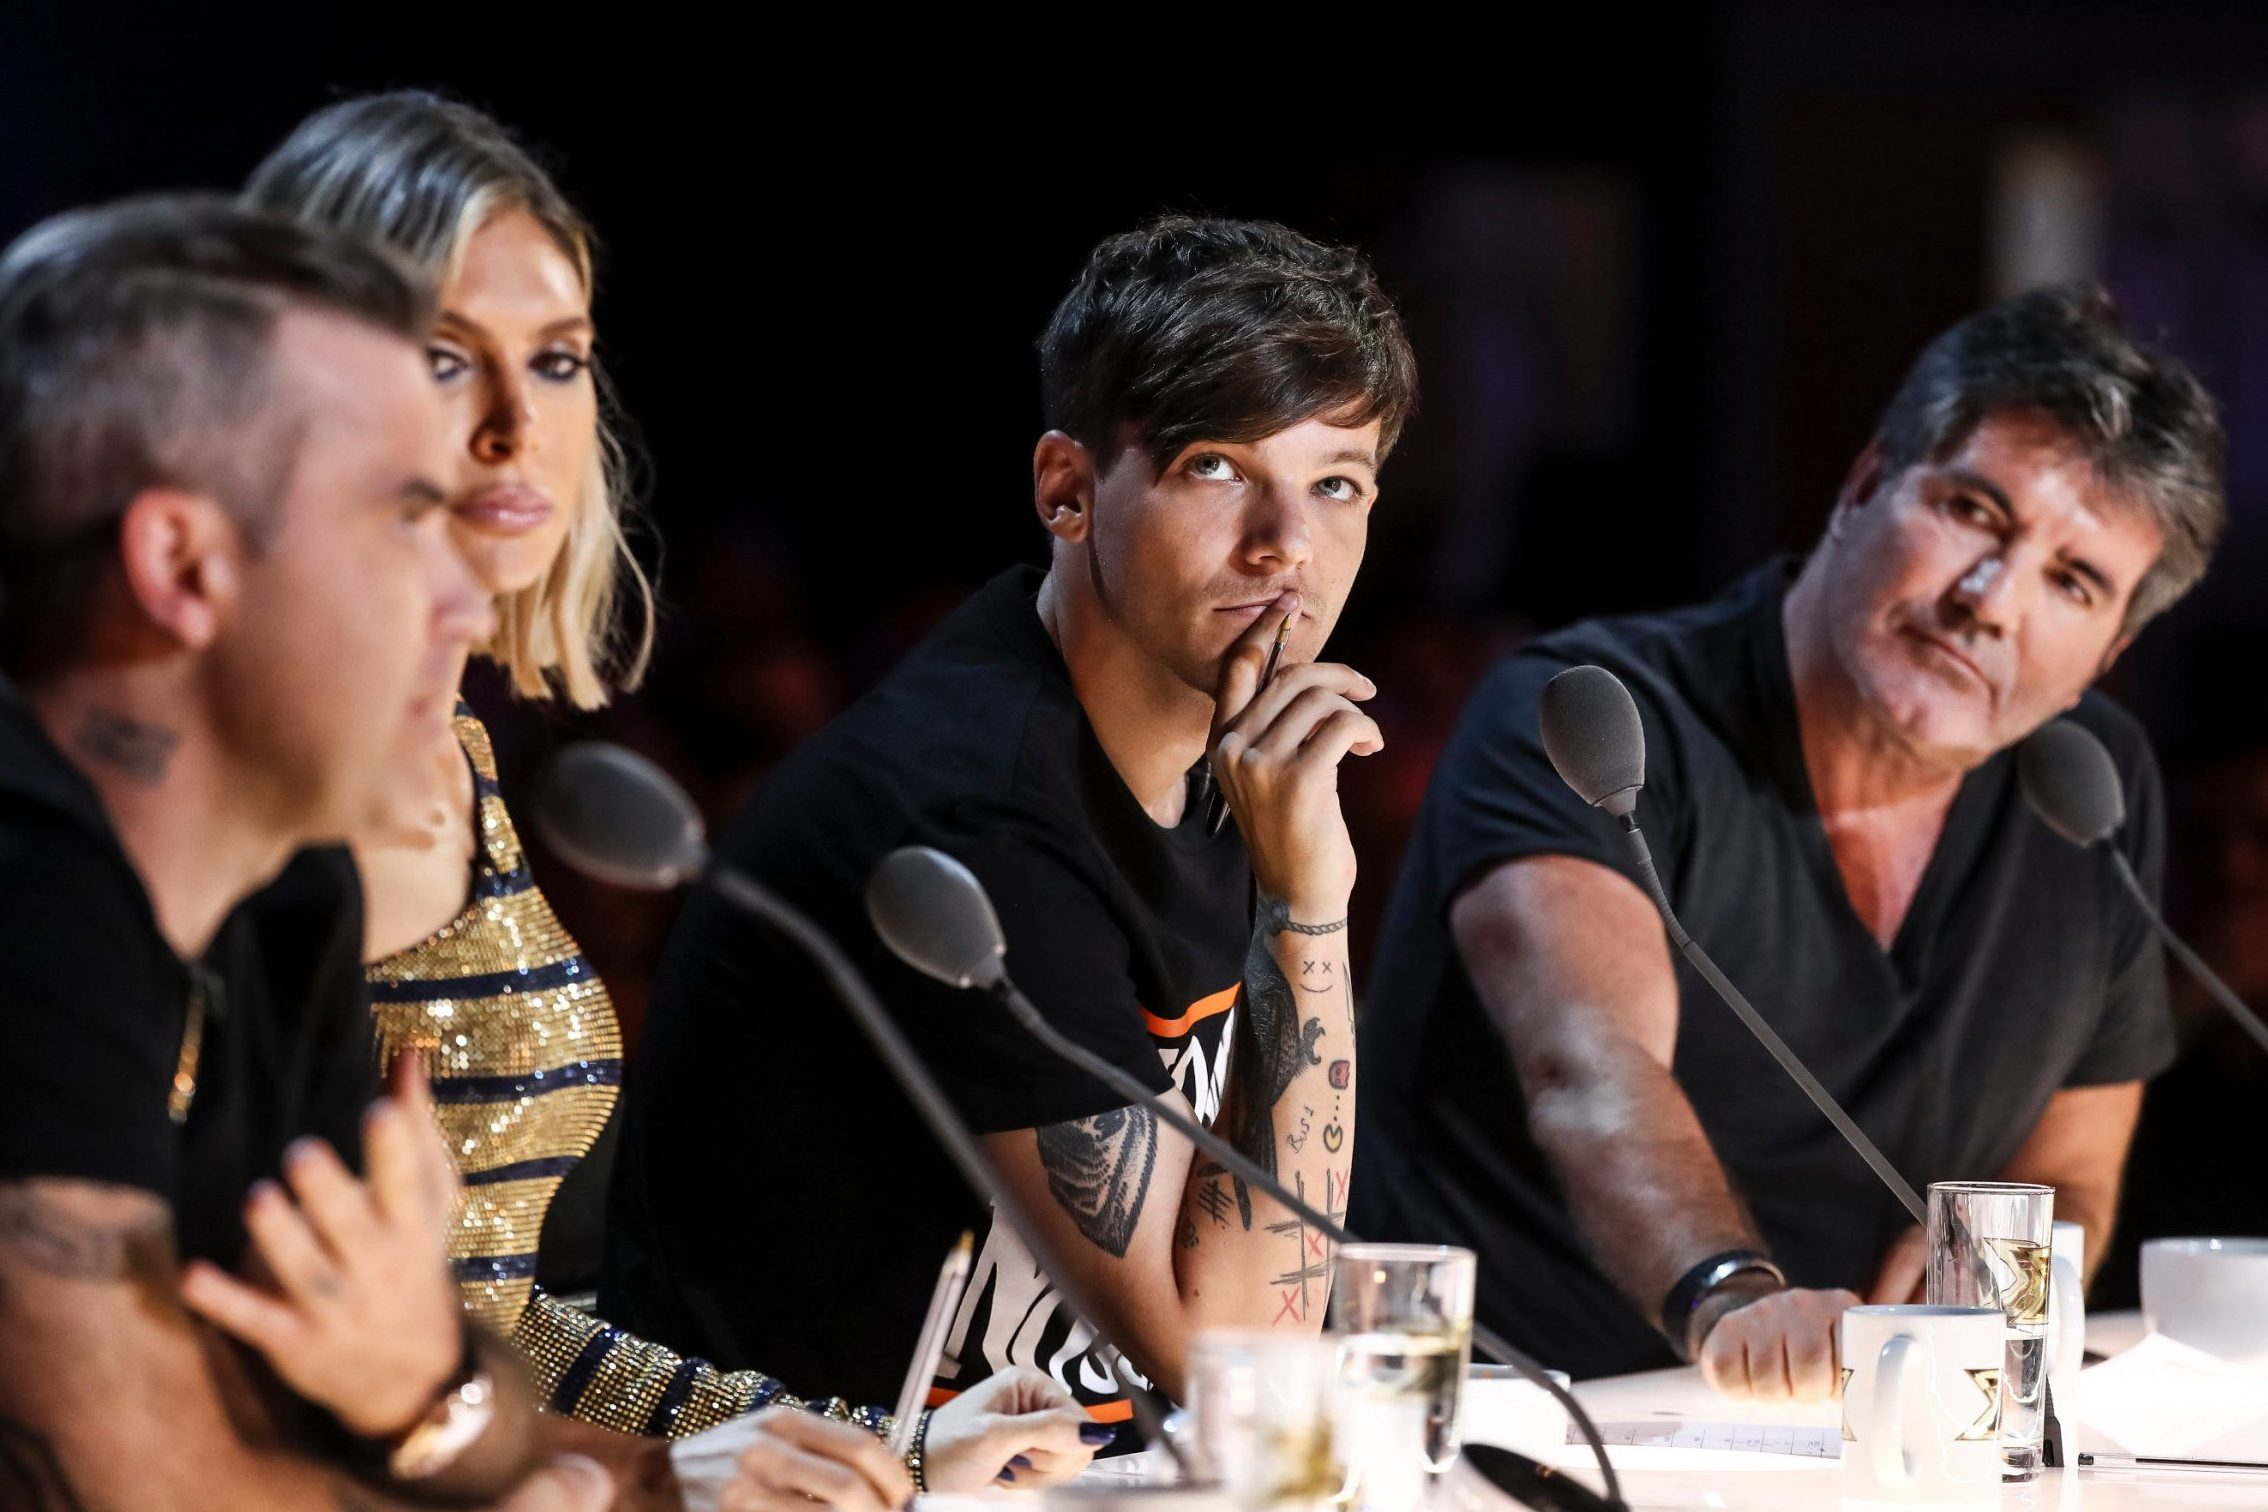 STRICT EMBARGO - NO USE BEFORE 00:01GMT SATURDAY 8TH SPETEMBER 2018. EDITORIAL USE ONLY - NO MERCHANDISING Mandatory Credit: Photo by Dymond/Thames/Syco/REX (9874911am) Robbie Williams, Ayda Williams, Louis Tomlinson and Simon Cowell during Acacia K's performace 'The X Factor' TV show, Series 15, Episode 3, UK - 08 Sep 2018